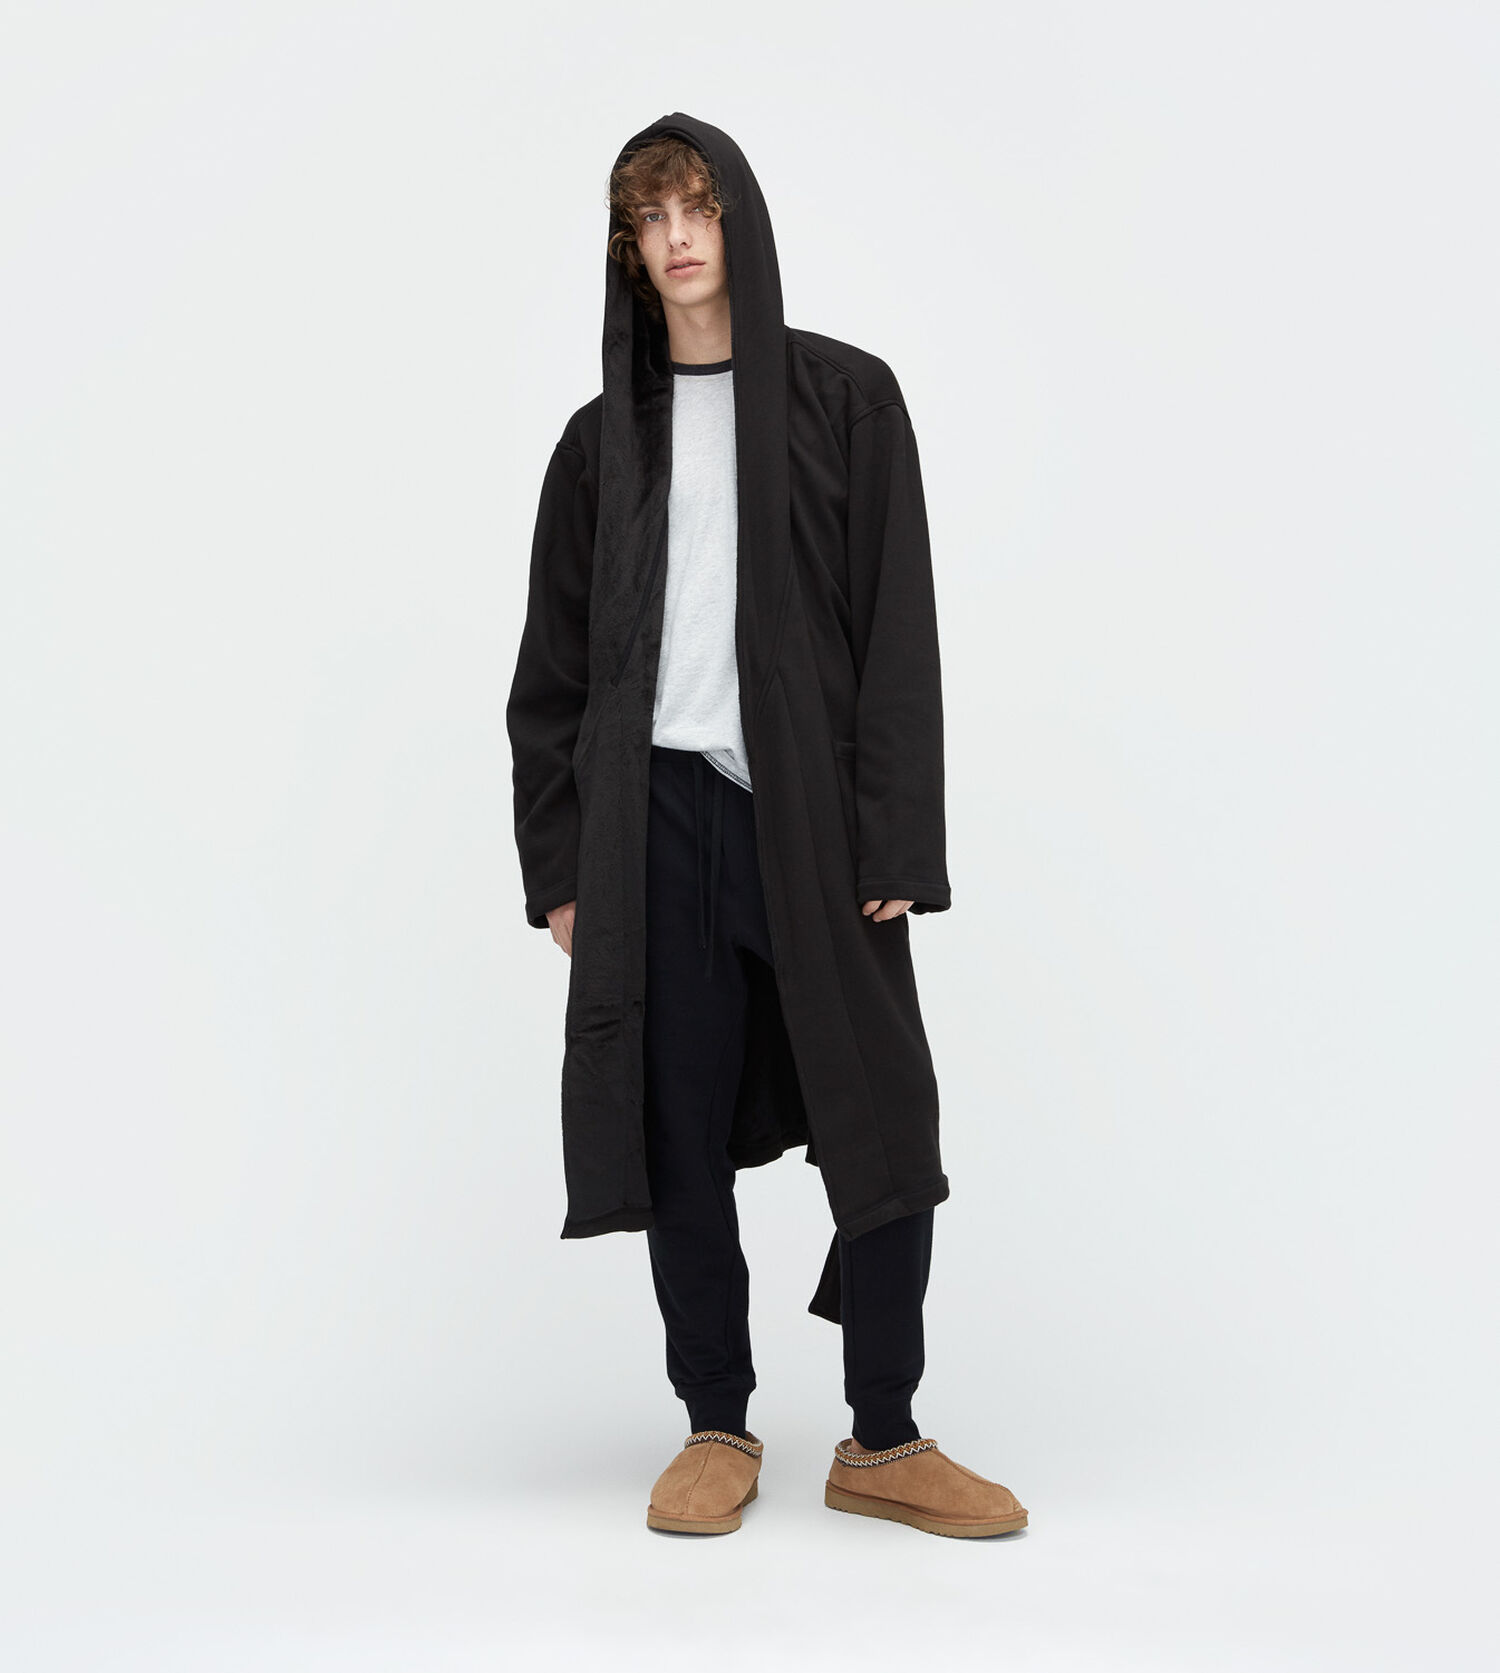 Zoom Brunswick Robe - Image 1 of 4 c5c6ca3c6